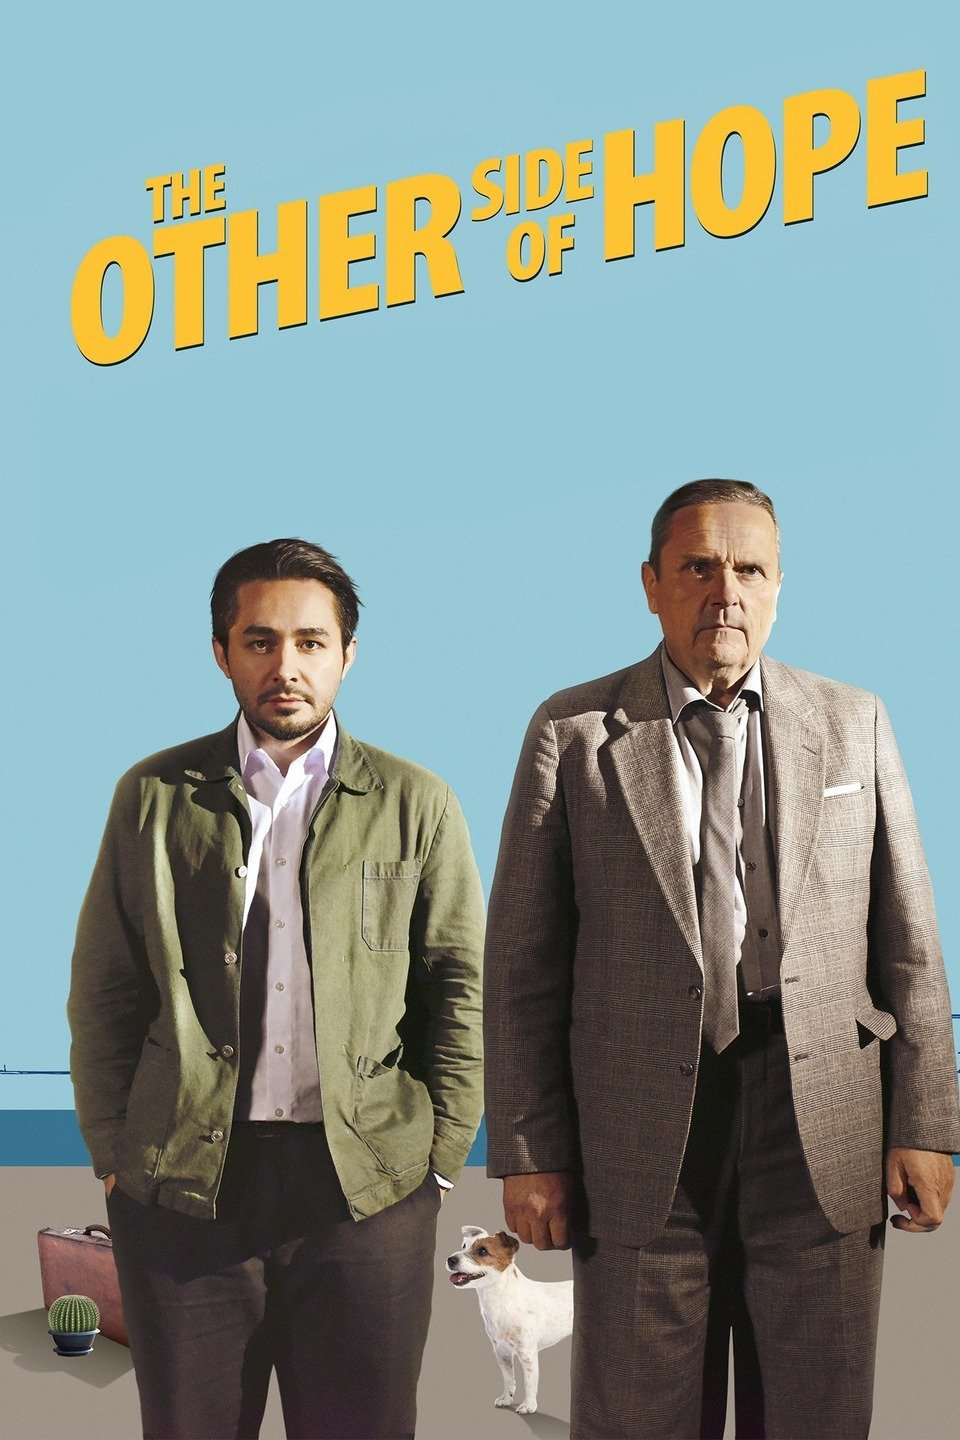 - THE OTHER SIDE OF HOPE, 2017 (Finland) Winner of Silver Bear for Best Director at the Berlin International Film Festival, The Other Side of Hope interlaces the struggles of two men who have fled their homes. The first is Khaled, a Syrian asylum seeker who arrives in Helsinki as a stowaway on a coal freighter. The second escapee doesn't undertake quite such a hazardous journey. Wikström walks out on his alcoholic wife, wins a fortune at poker and buys a failing restaurant called the Golden Pint. Despite the tragic situation it portrays, the film is full of humour and food-for-thought, making it a pure delight. Director: Aki KaurismäkiLength: 1h 40 minsWhere and when: Genesis Cinema, Saturday 2 December, 18:00 - screened alongside Roots, Only Roots.Price and tickets: £6.5-10; buy a ticket here.Q&A: Saad Eddine Said (Battersea Art Centre), Katie Barlow (photographer and documentarist) and Lucy Carrigan (International Rescue Committee)